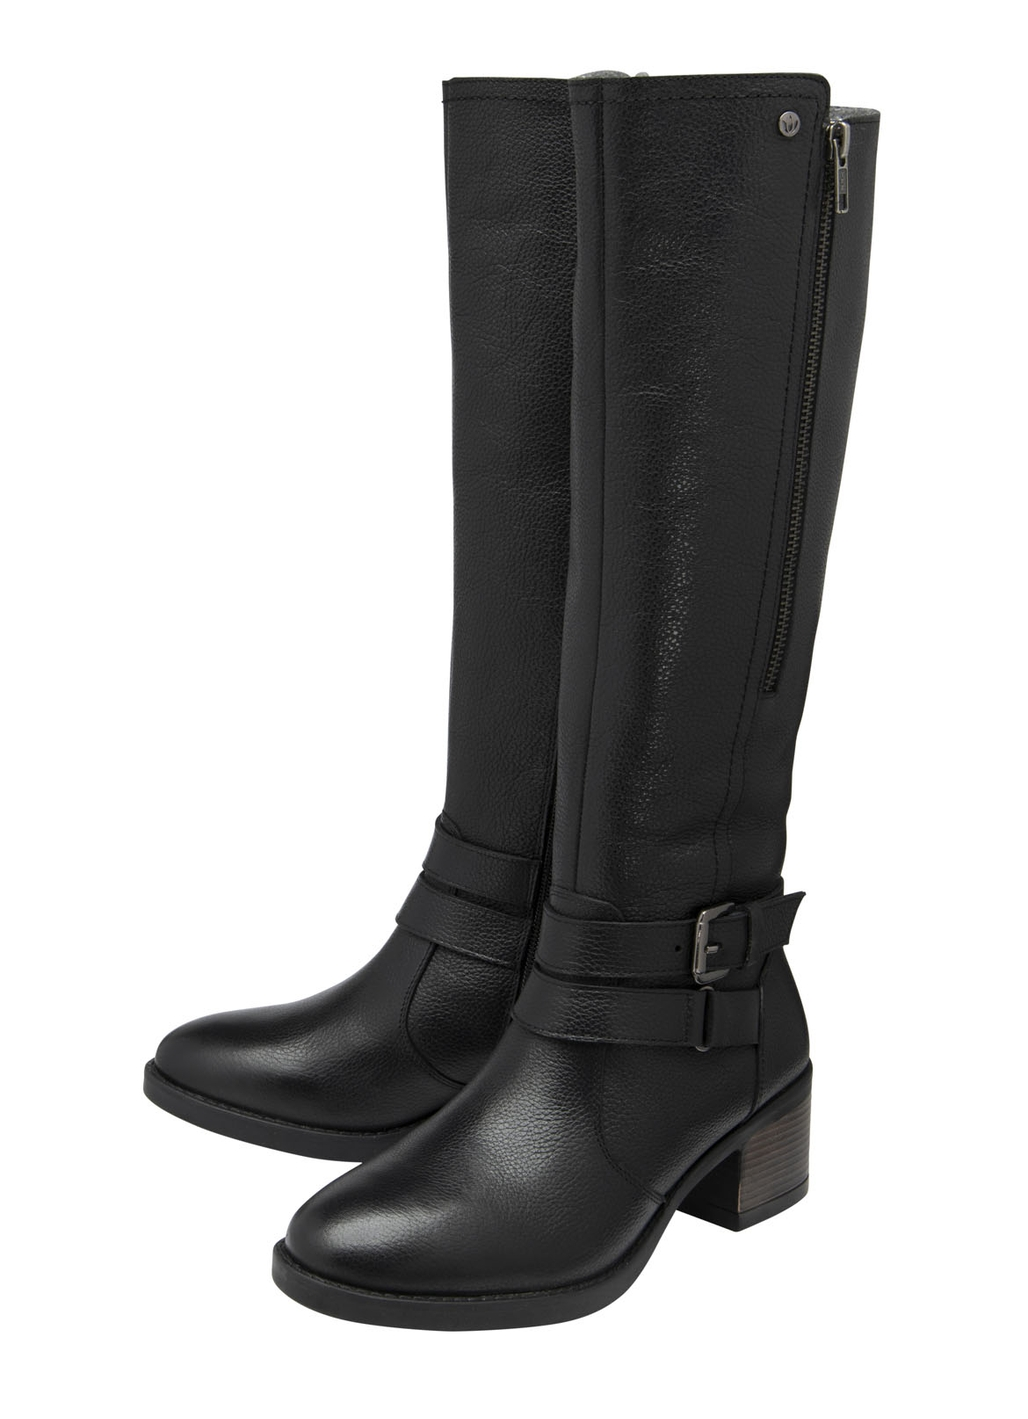 Lotus Jive Knee High Leather Boots in Black